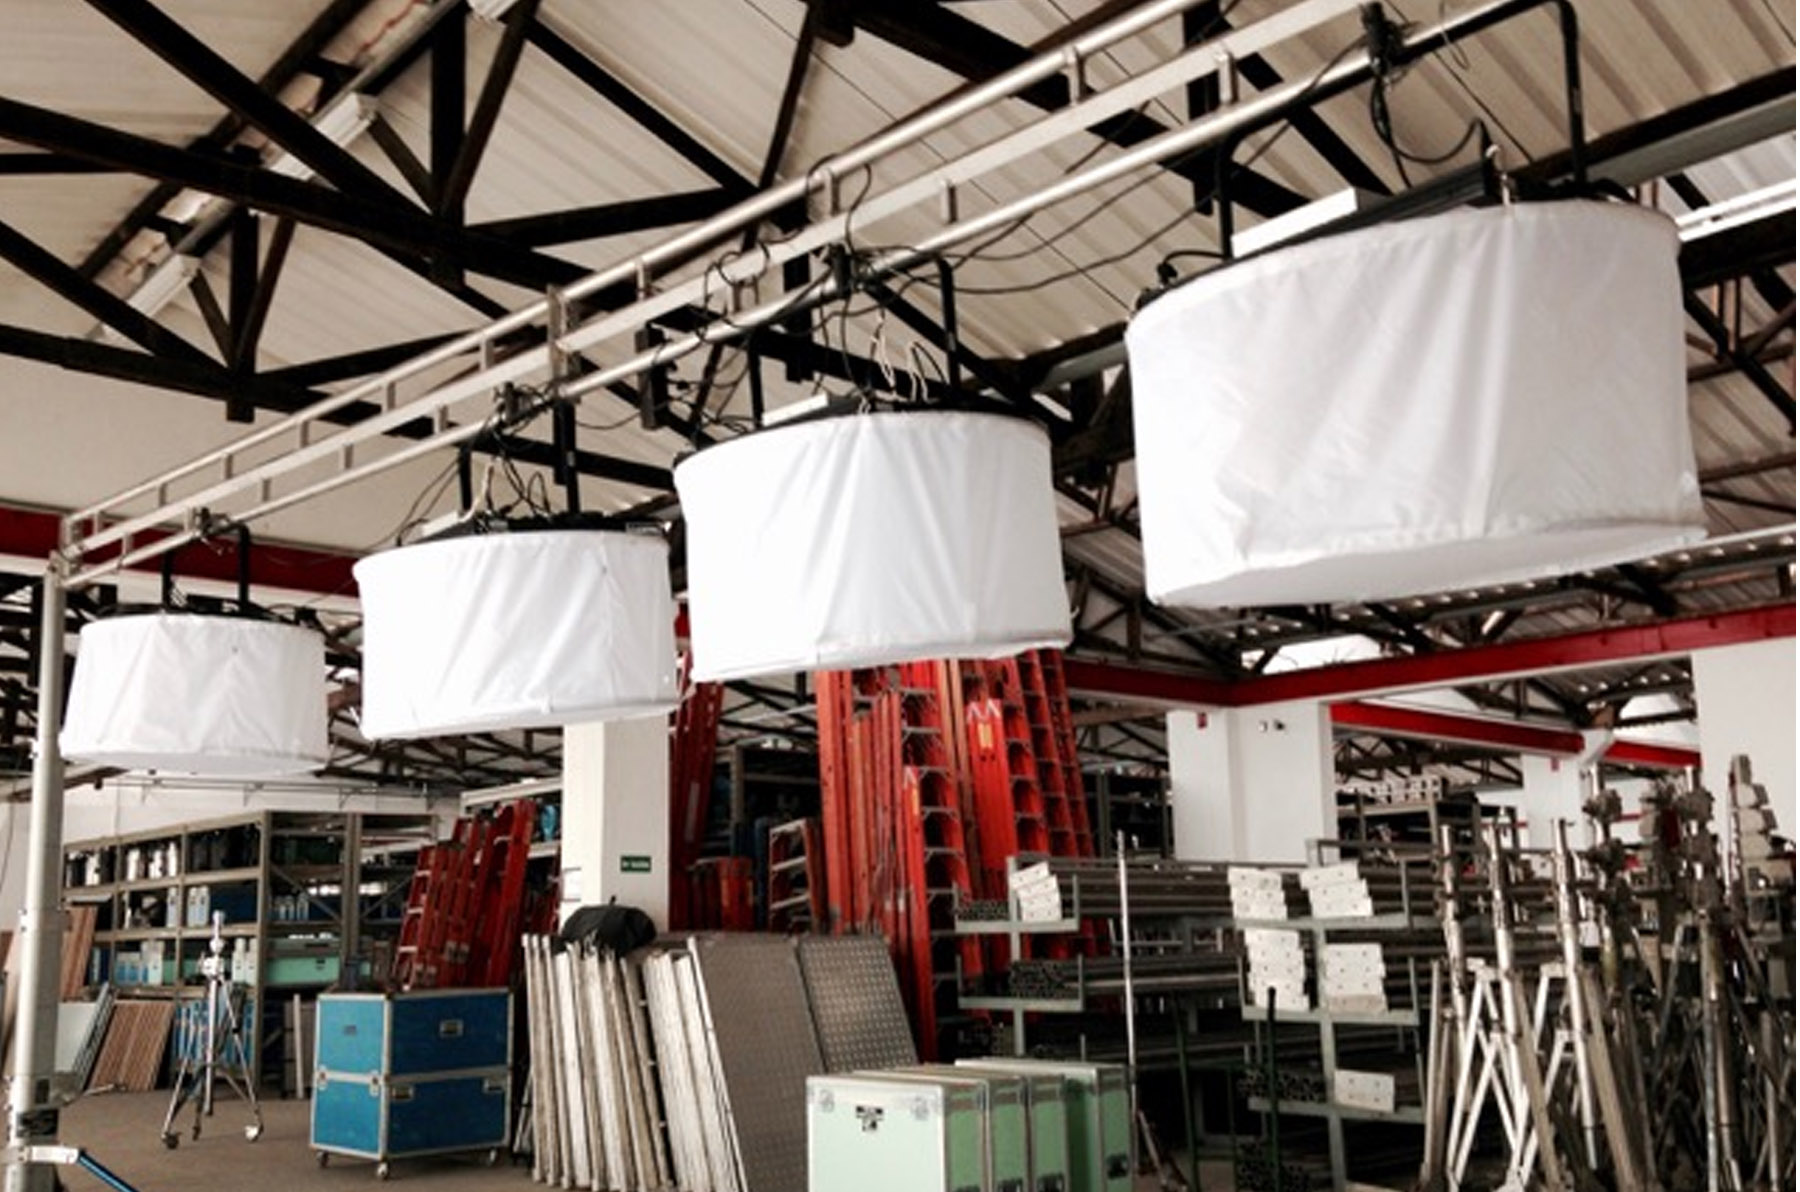 vl2x2-power-spacelight-brasil-1800x1192